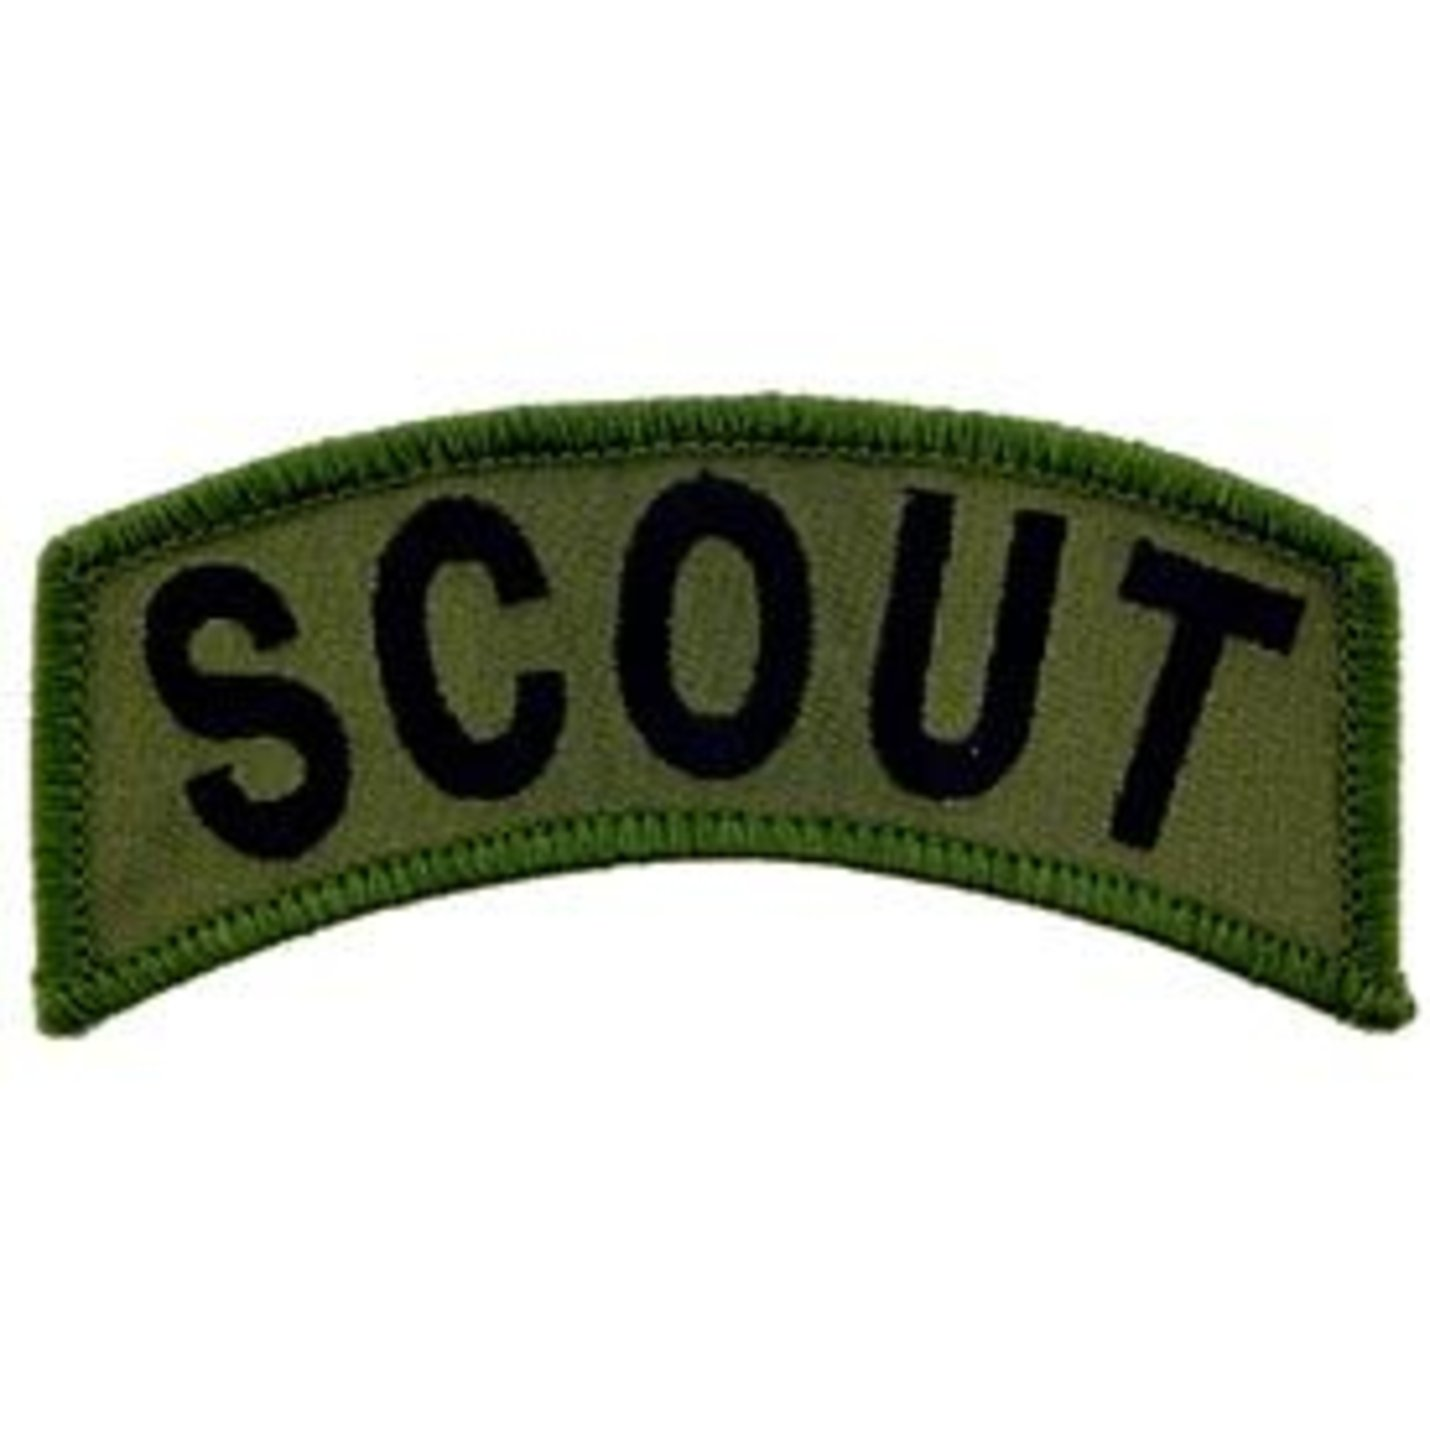 EagleEmblems pm0624 patch-army、タブ、Scout (Subdued) (4